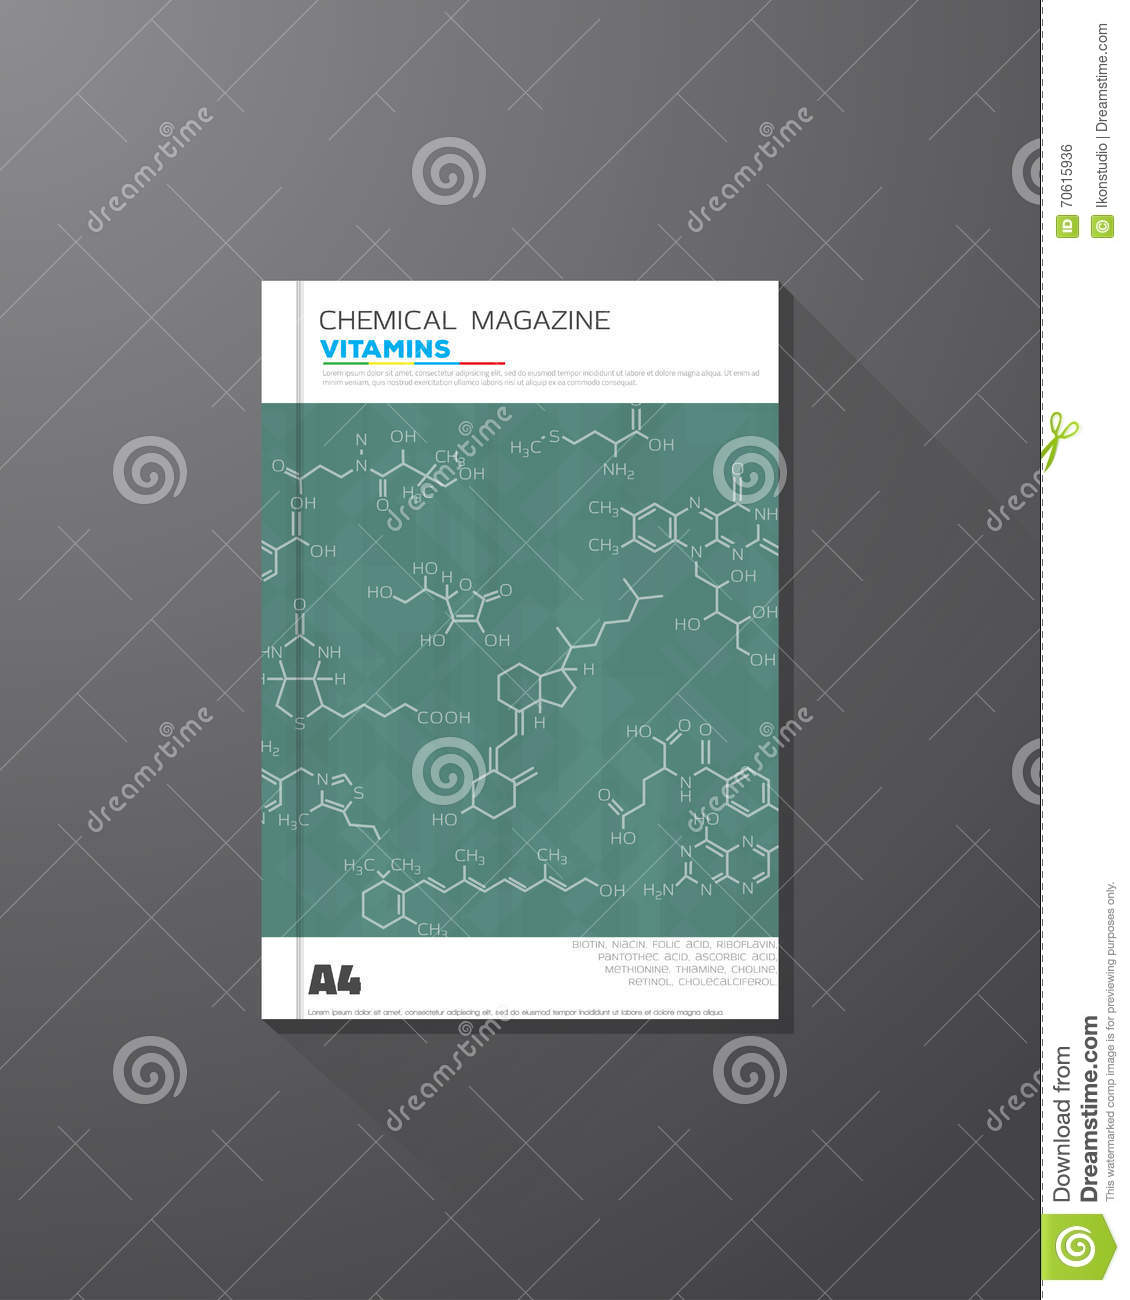 Chemical book cover stock vector. Illustration of acid 70615936.